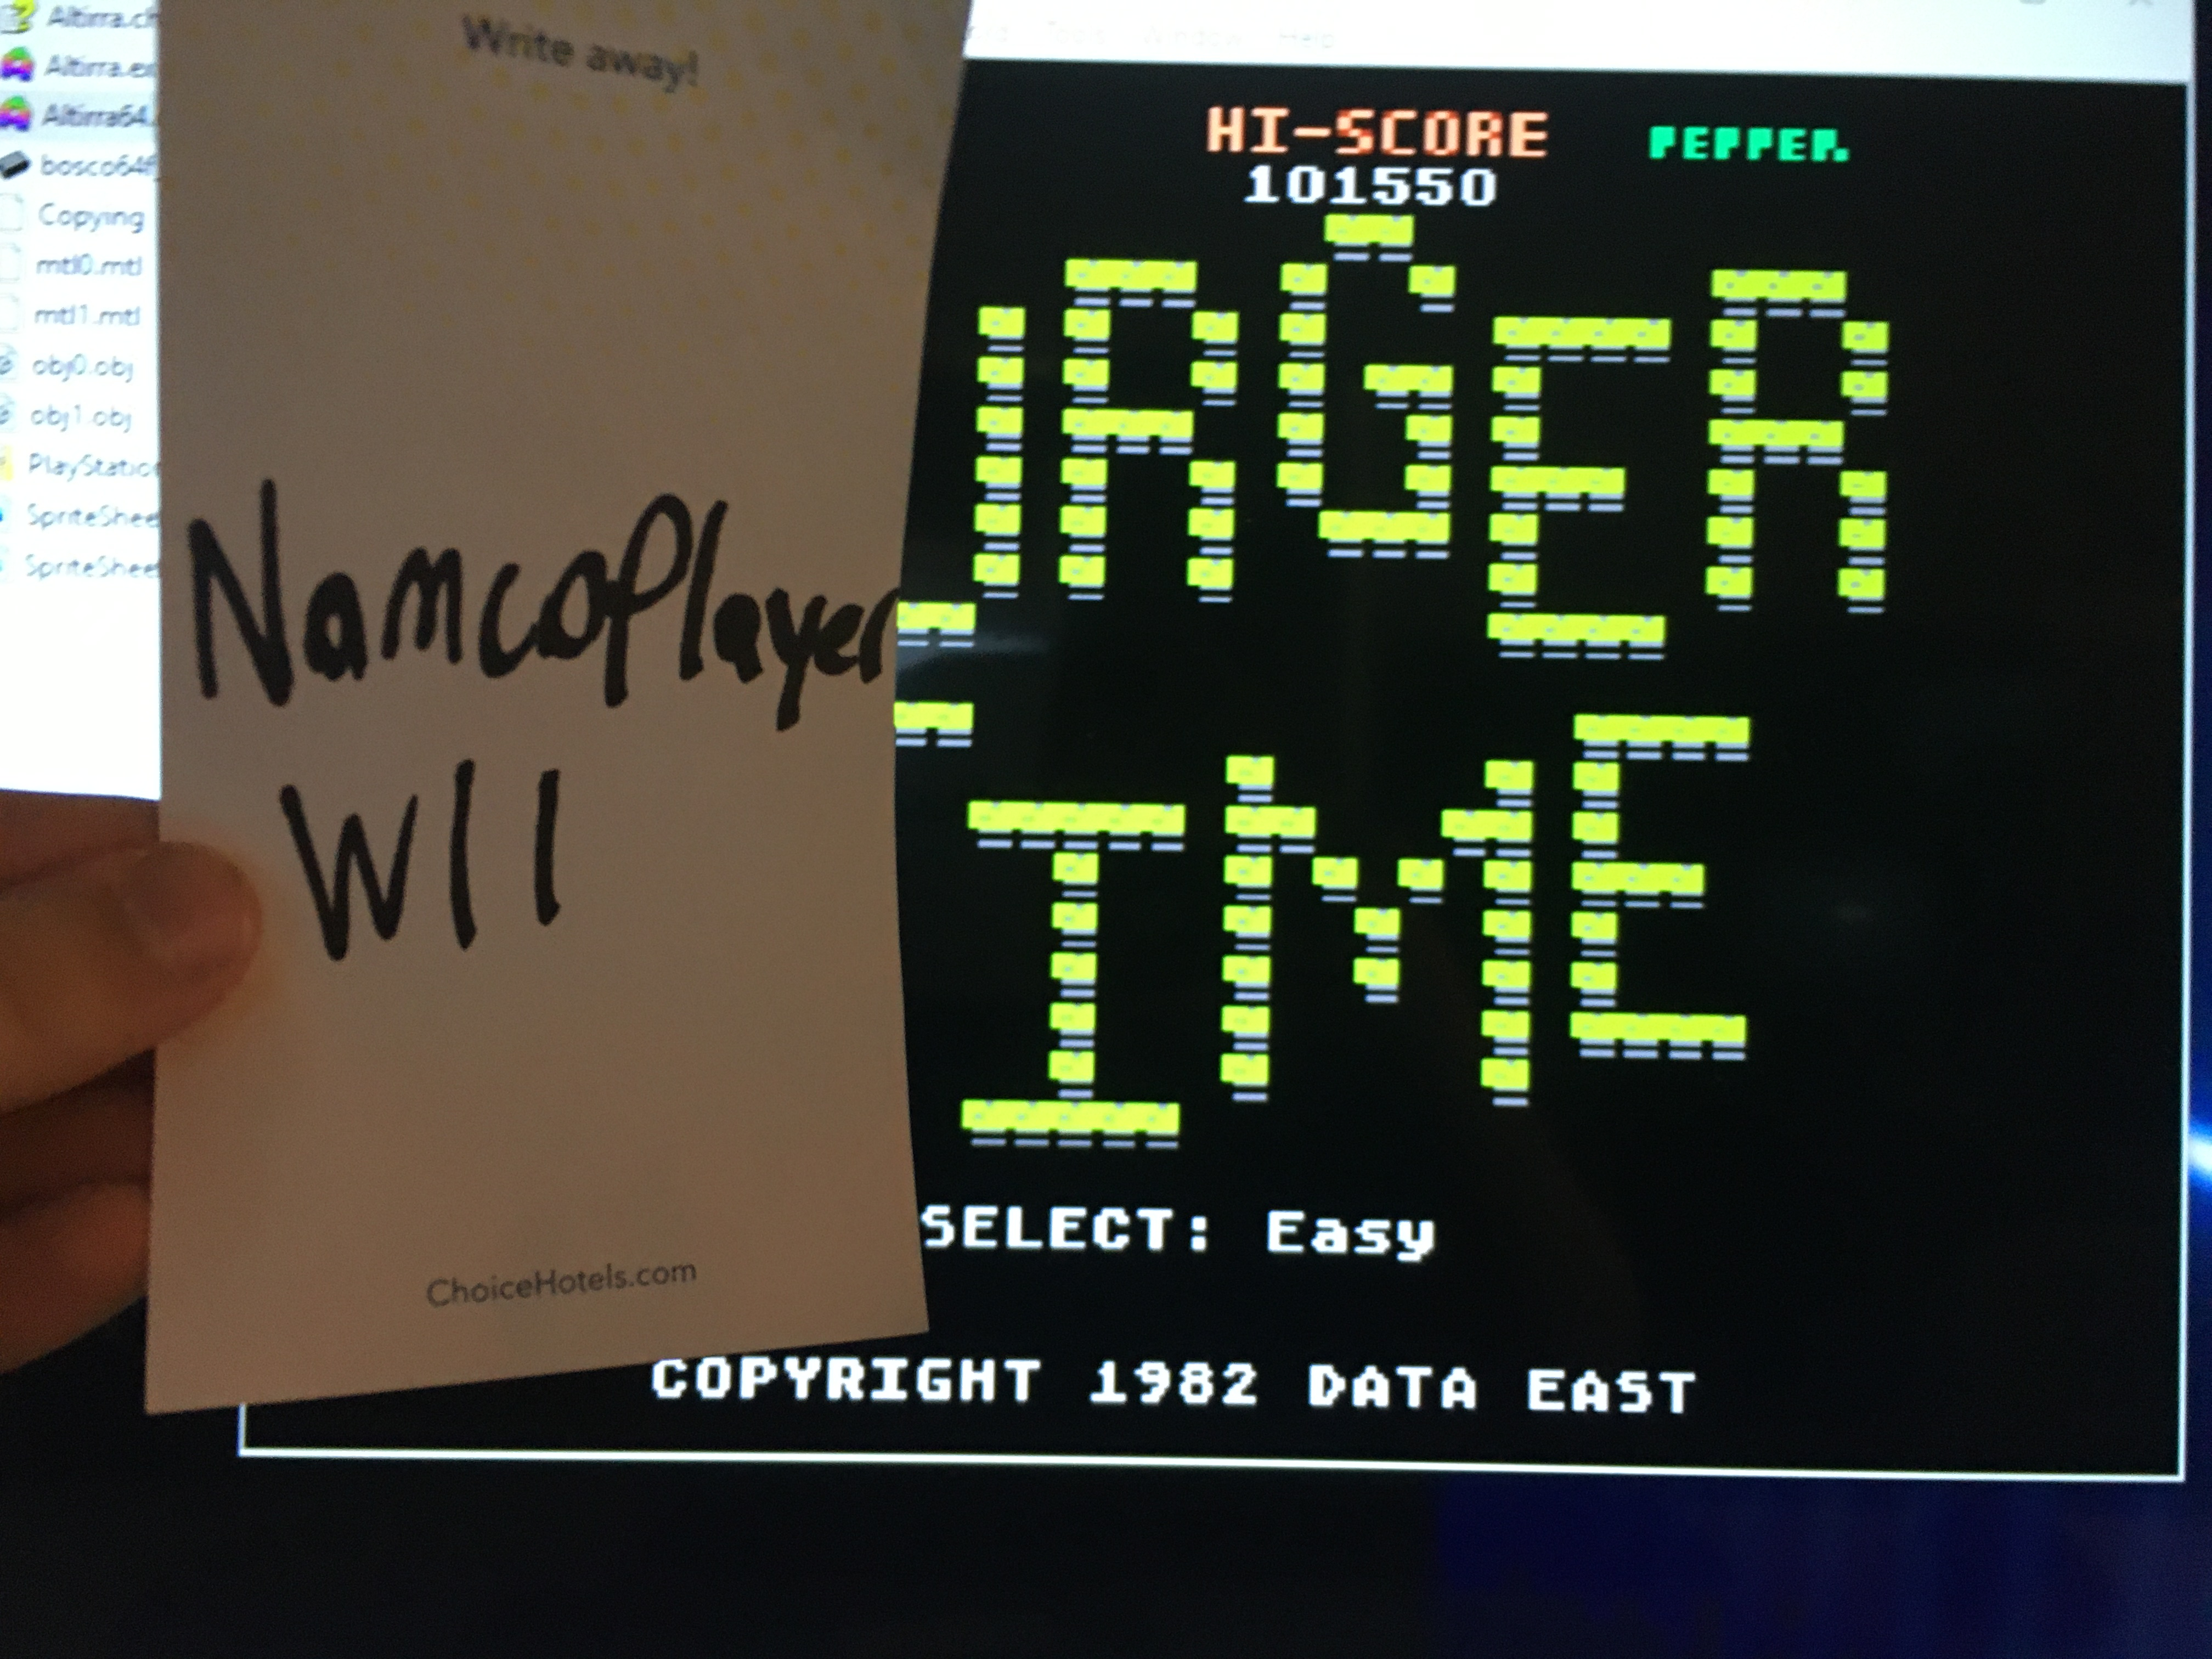 NamcoPlayer: Burger Time (5200) [Easy] (Atari 400/800/XL/XE Emulated) 101,550 points on 2020-11-16 13:50:45